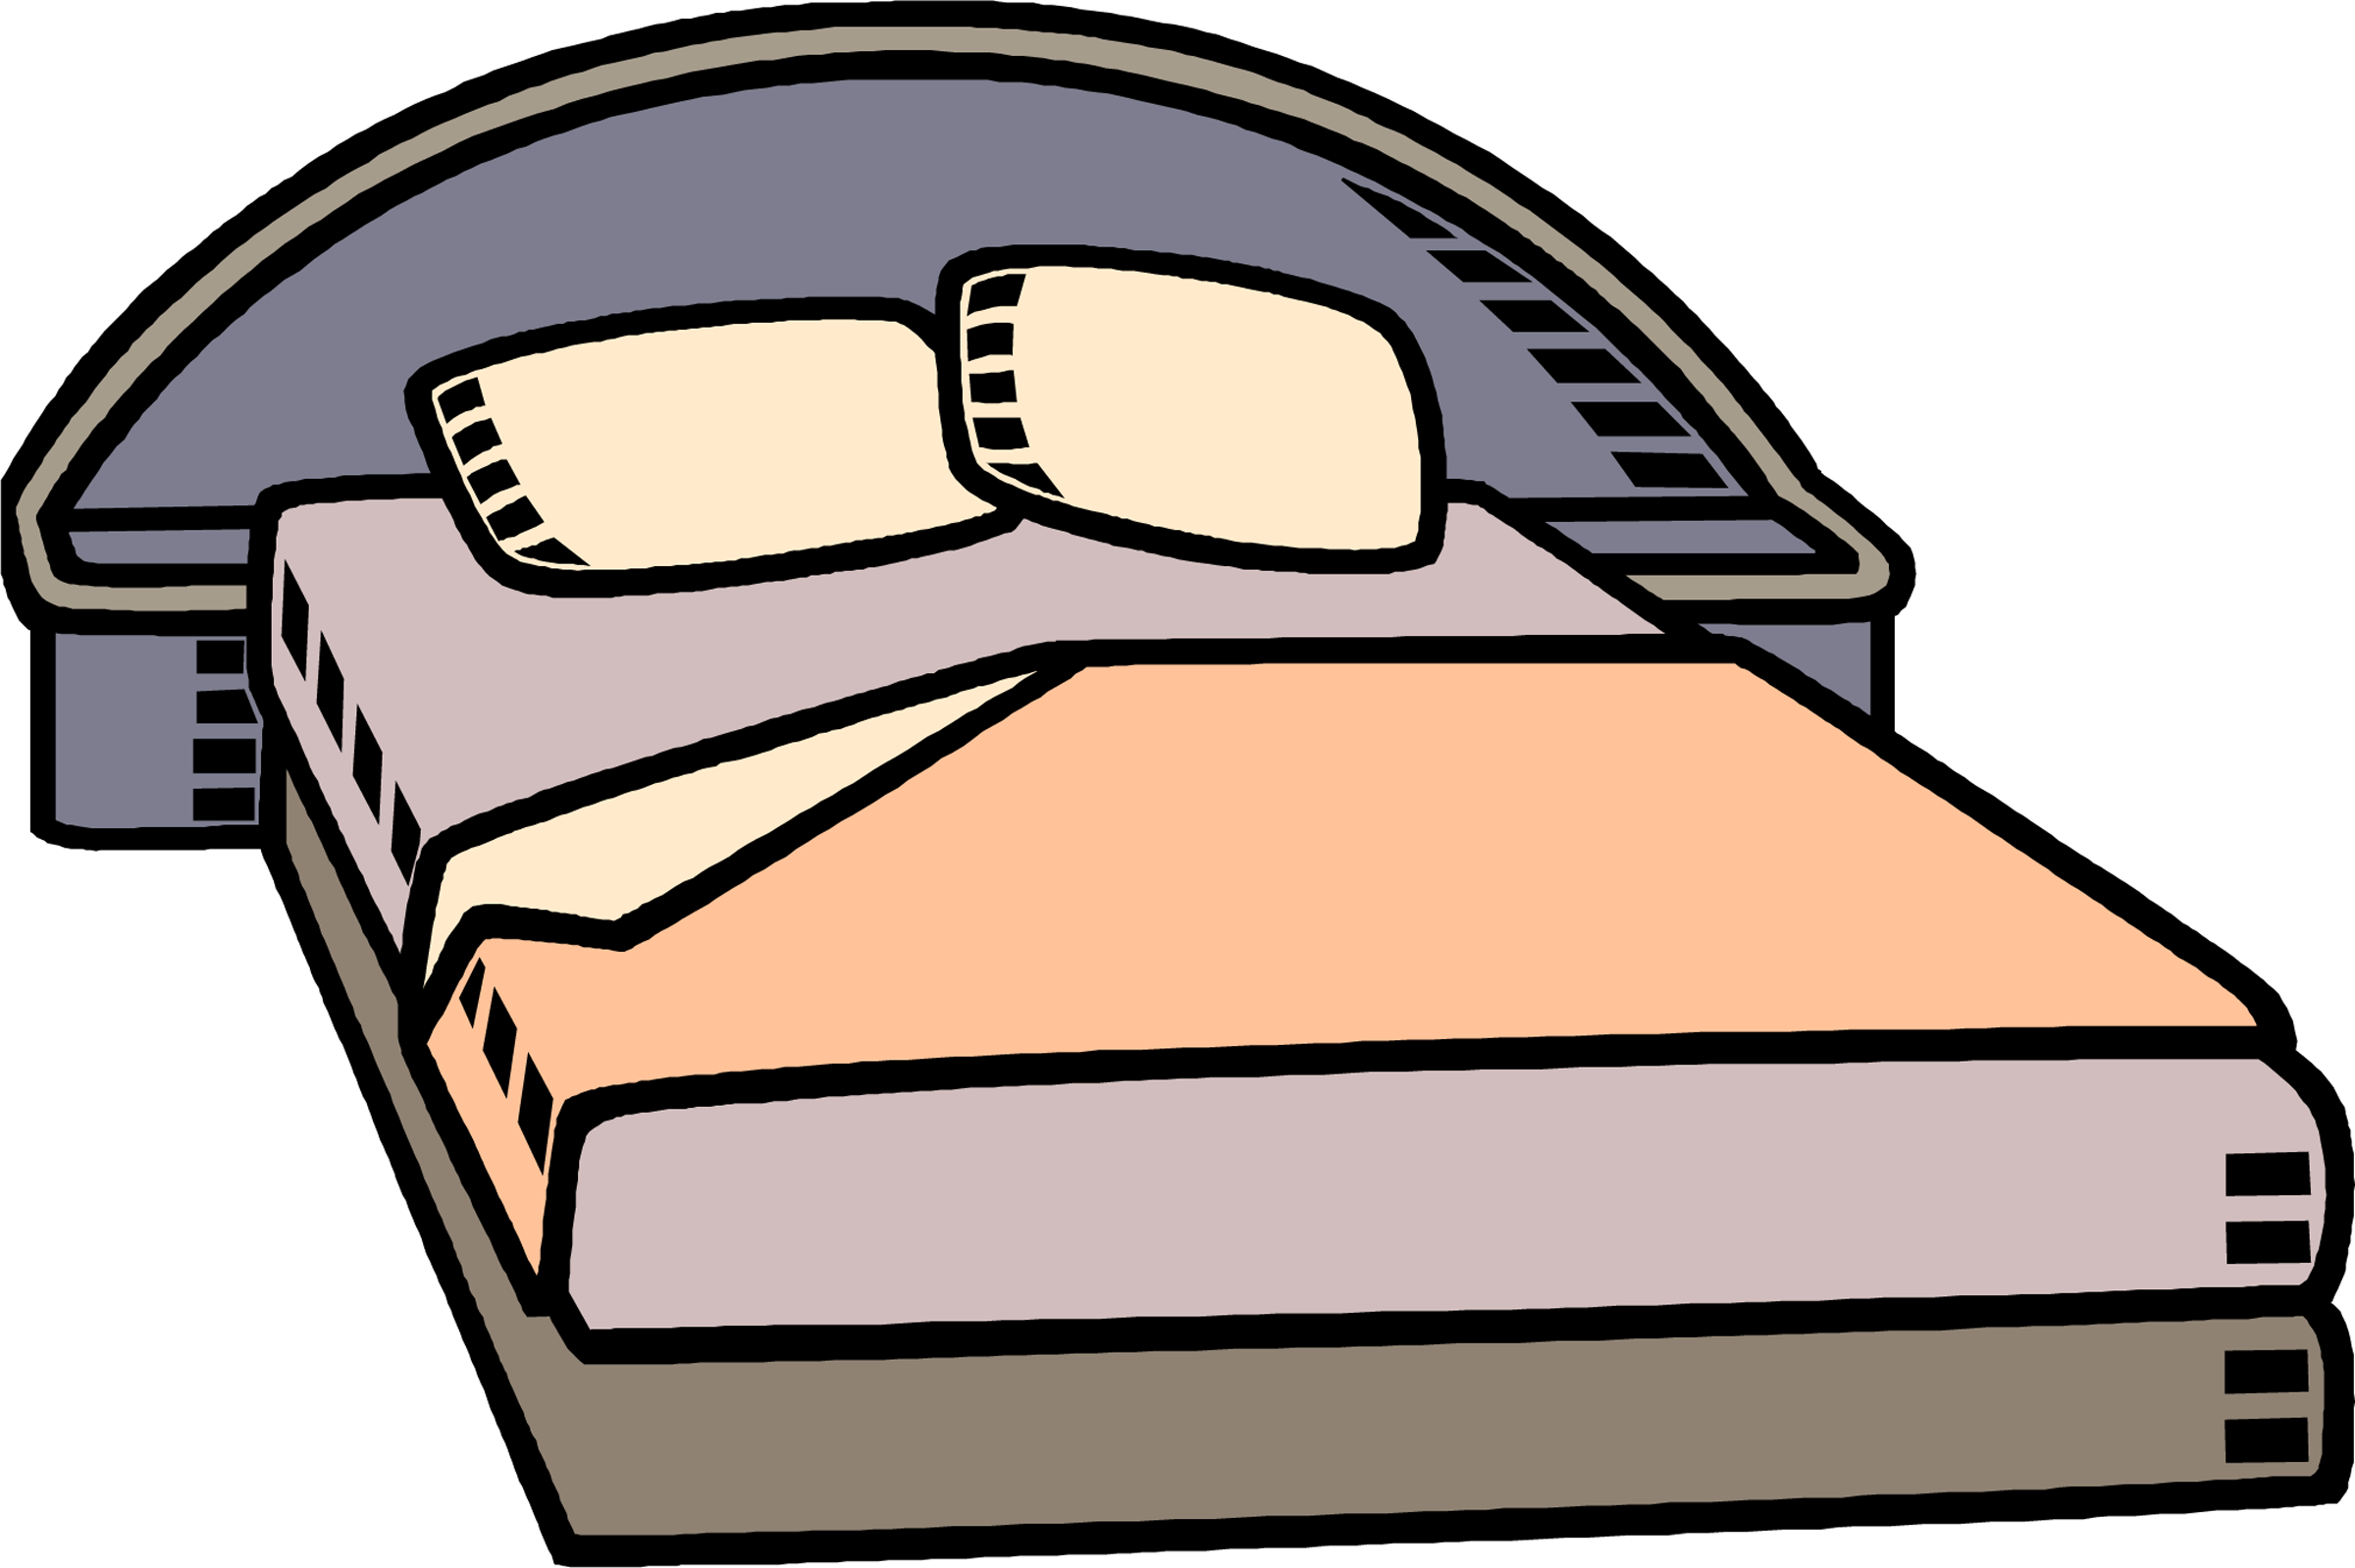 Clipart bed empty bed.  collection of transparent